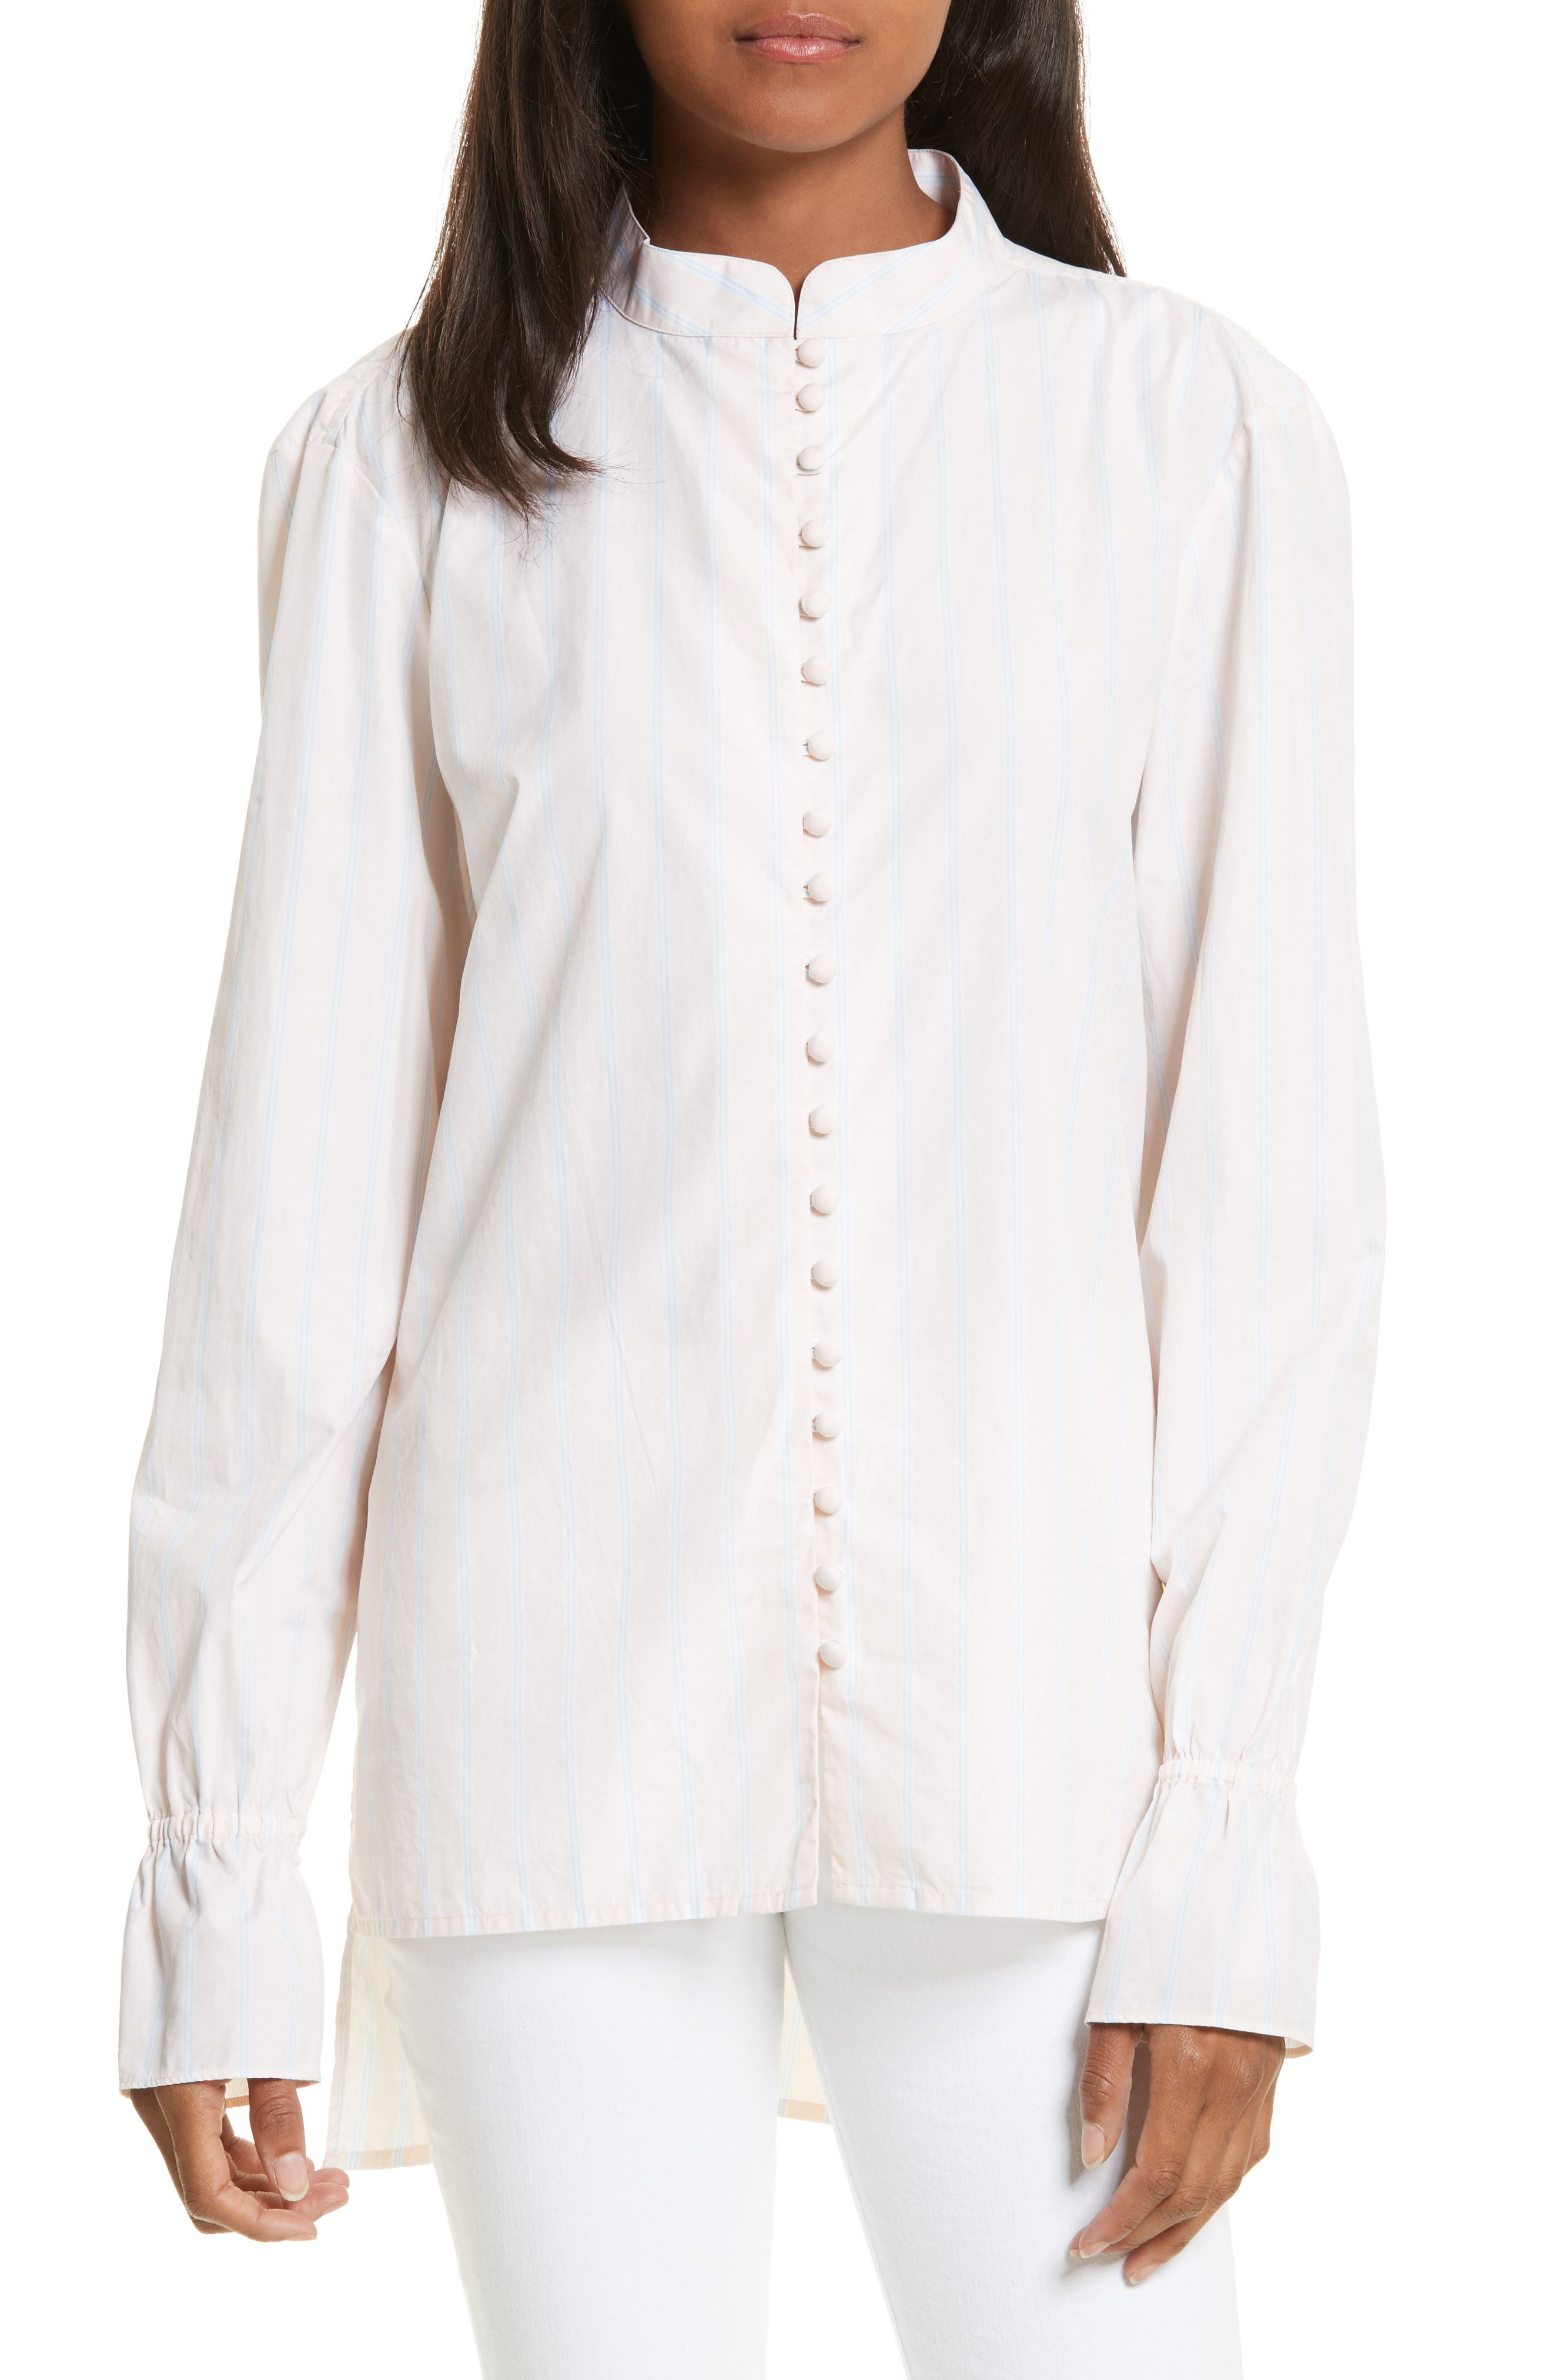 Alternate Image 1 Selected - FRAME Ruffle Cuff Cotton Shirt